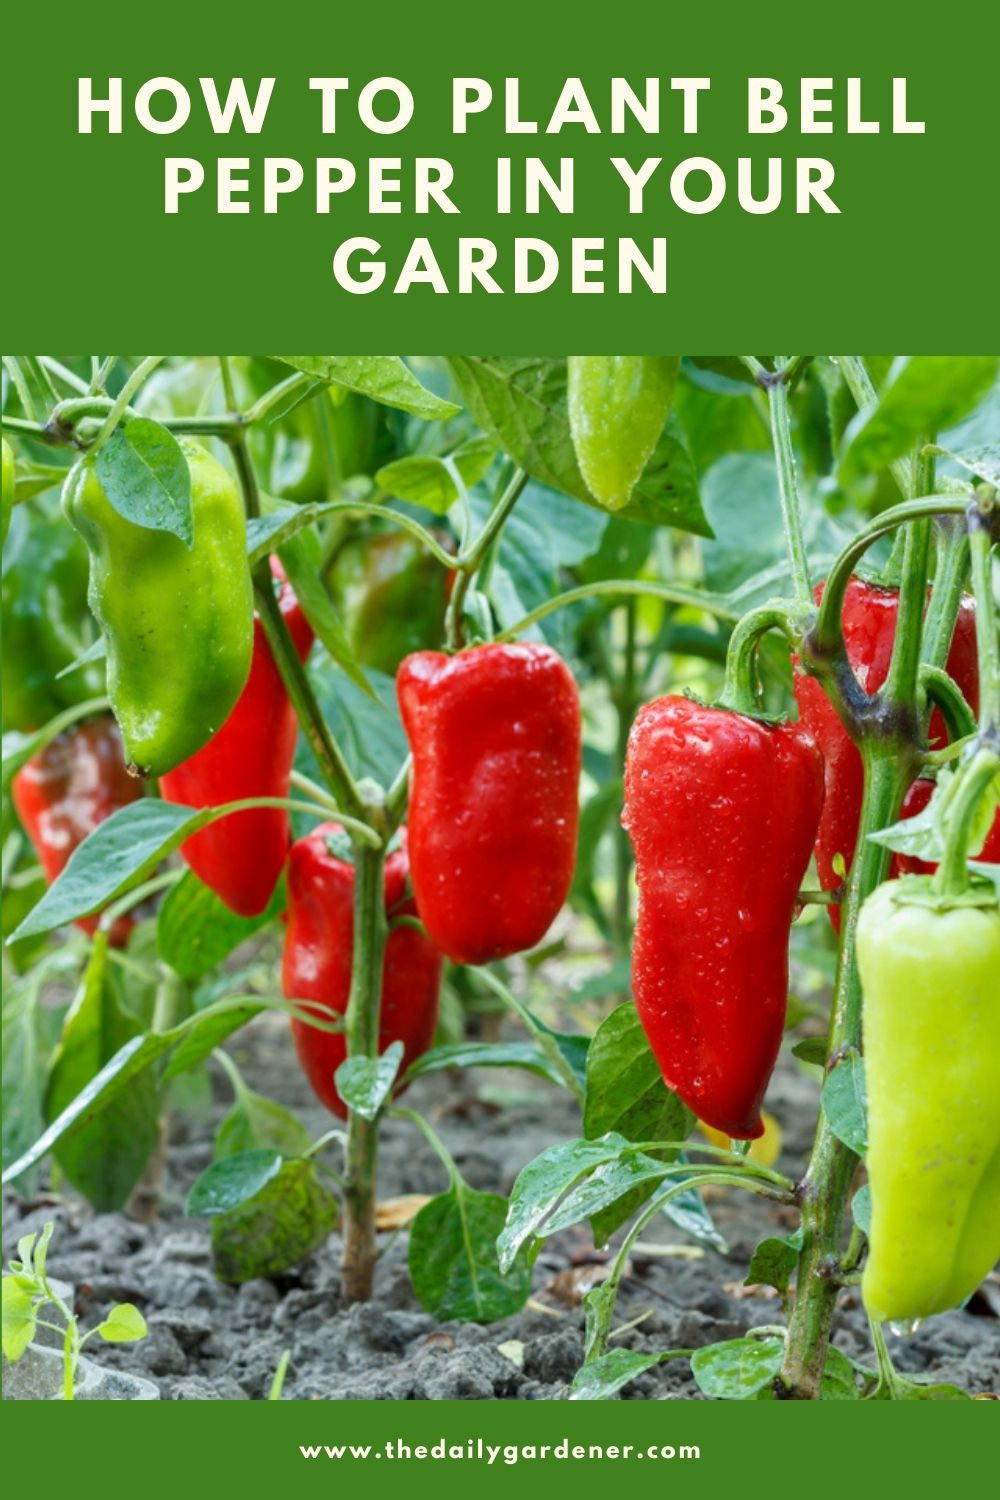 How to Plant Bell Pepper in Your Garden (Tricks to Care!) 1